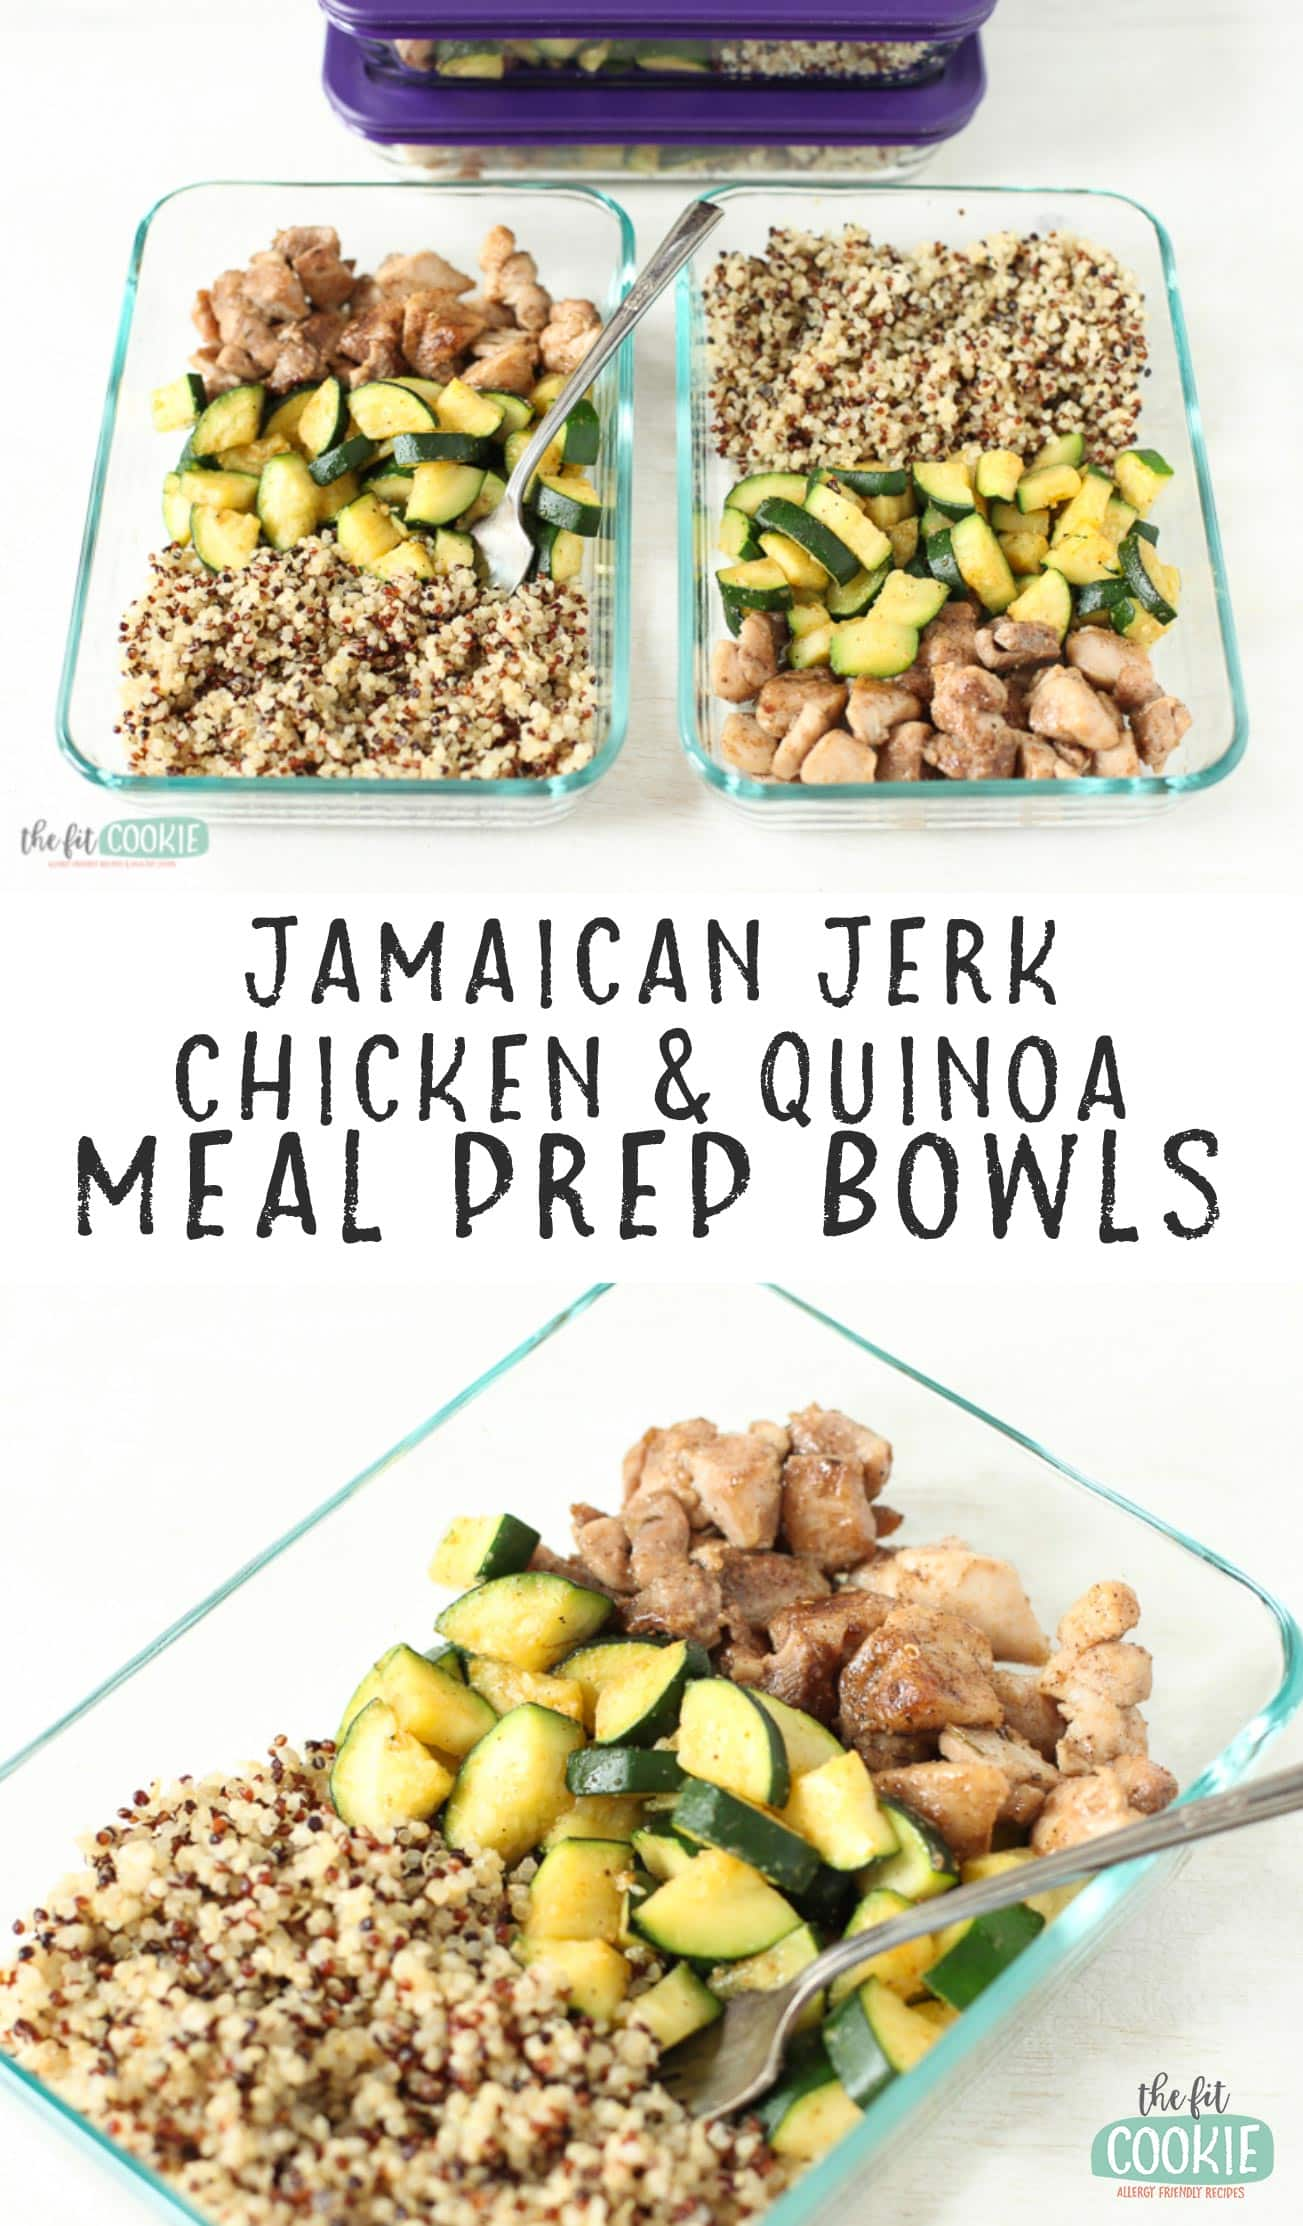 image collage of jamaican jerk chicken meal prep bowls